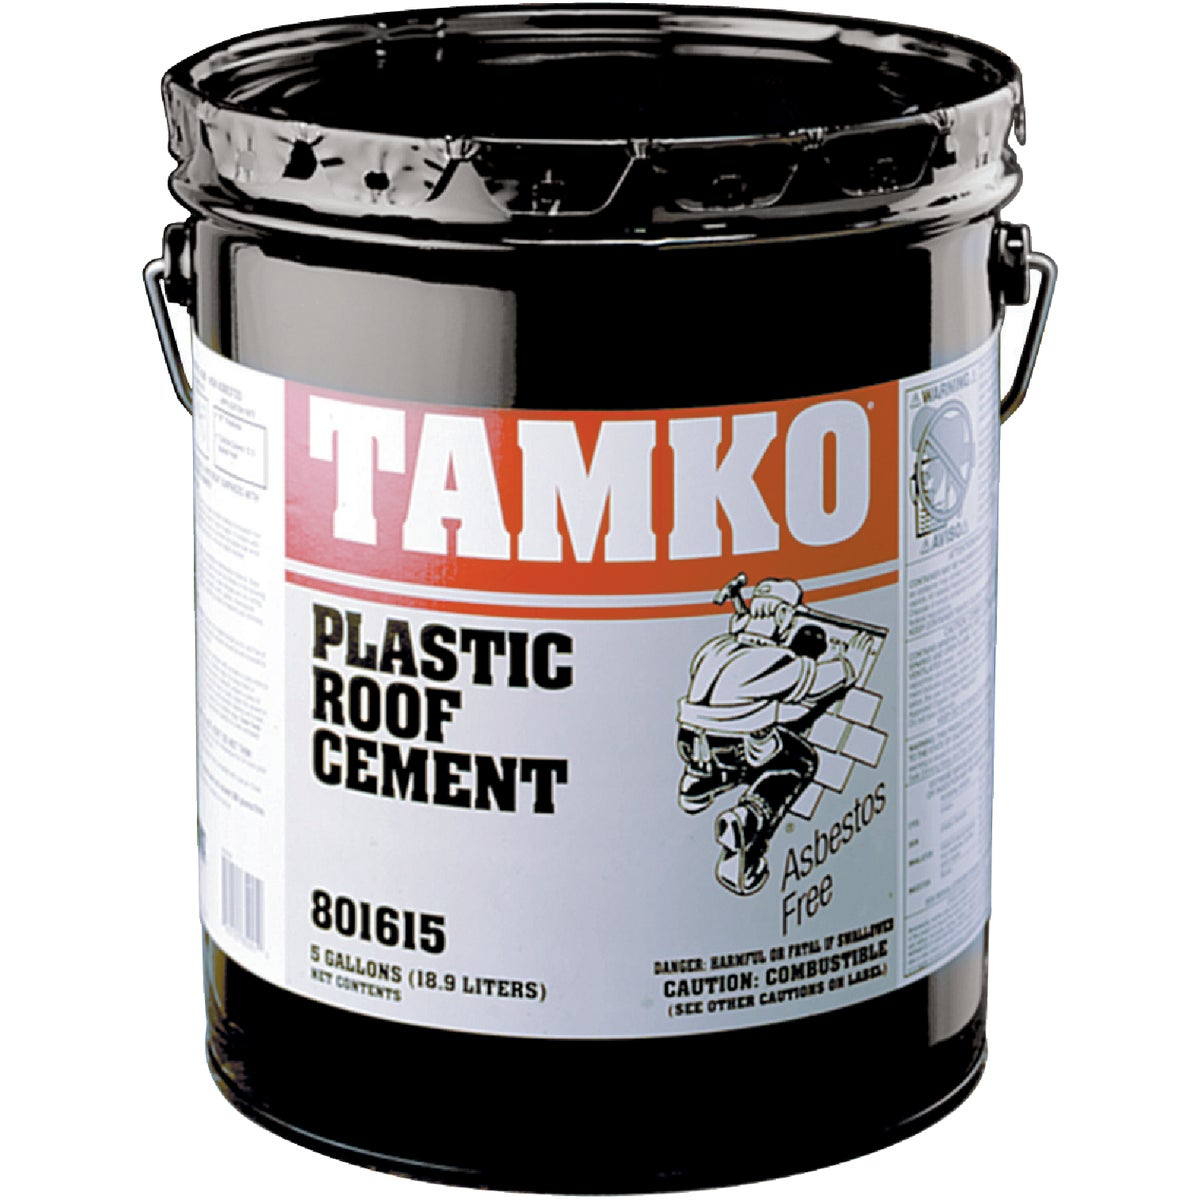 5GAL PLASTIC ROOF CEMENT - 30001611 by Tamko Bldg Prod Inc